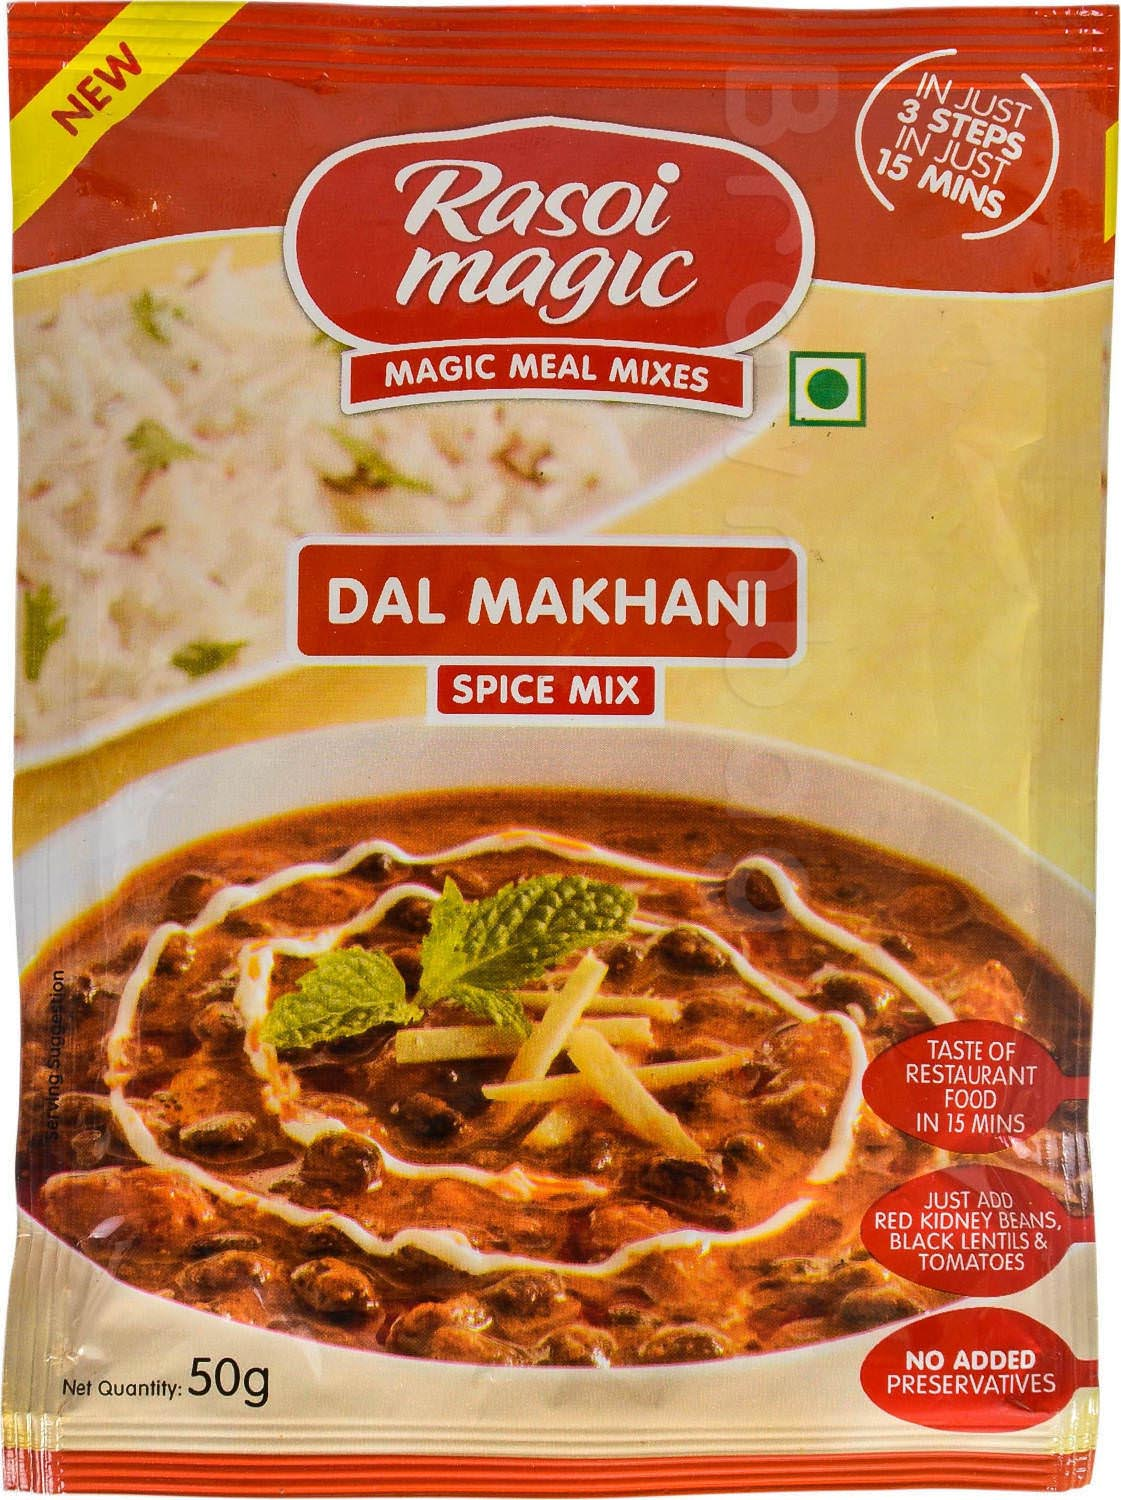 RASOI Magic Dal Makhani Spice Mix